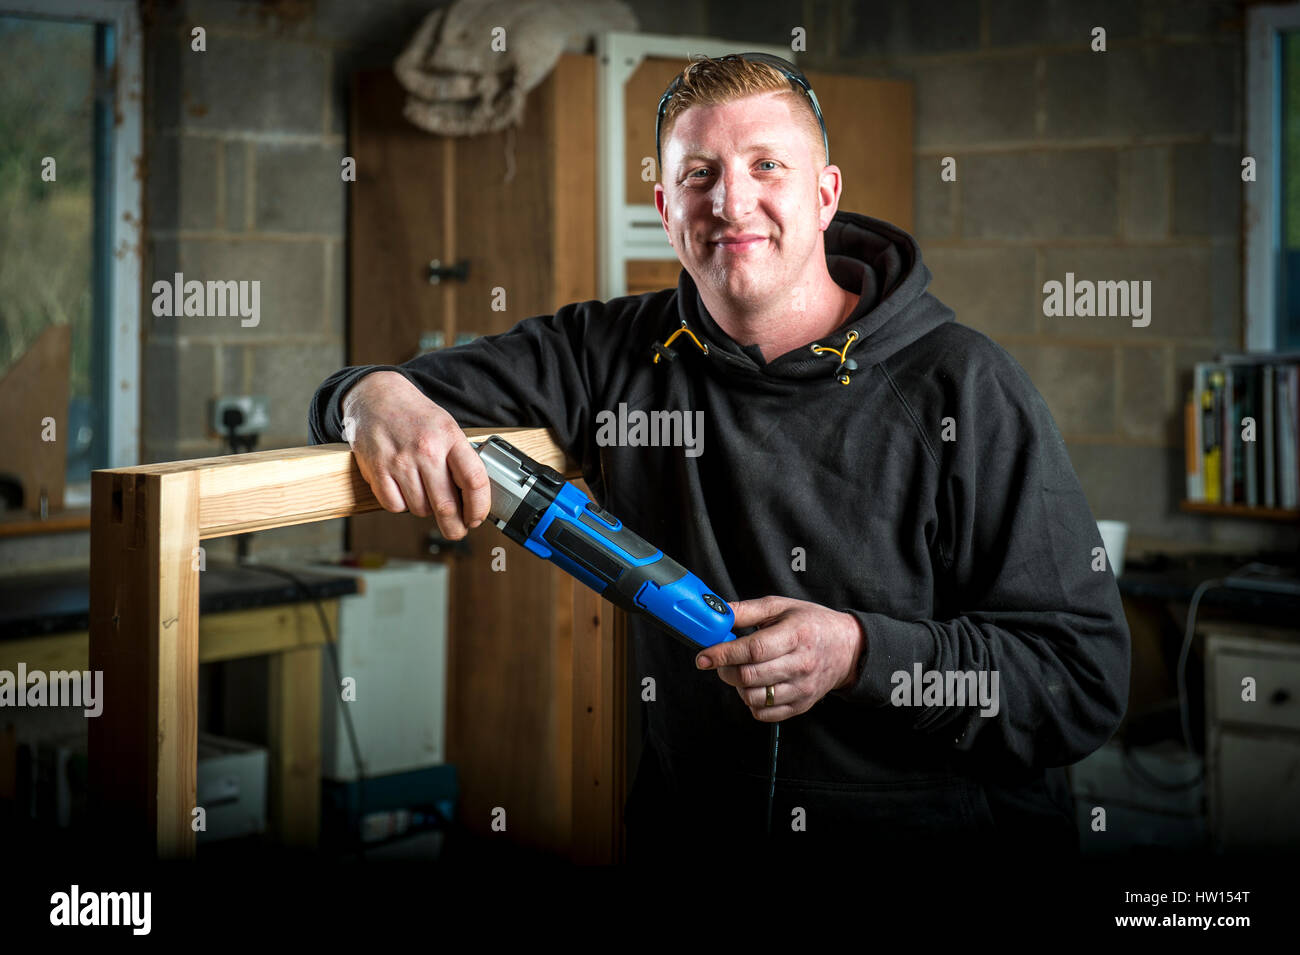 Carpenter in workshop holding a Multitool - Stock Image